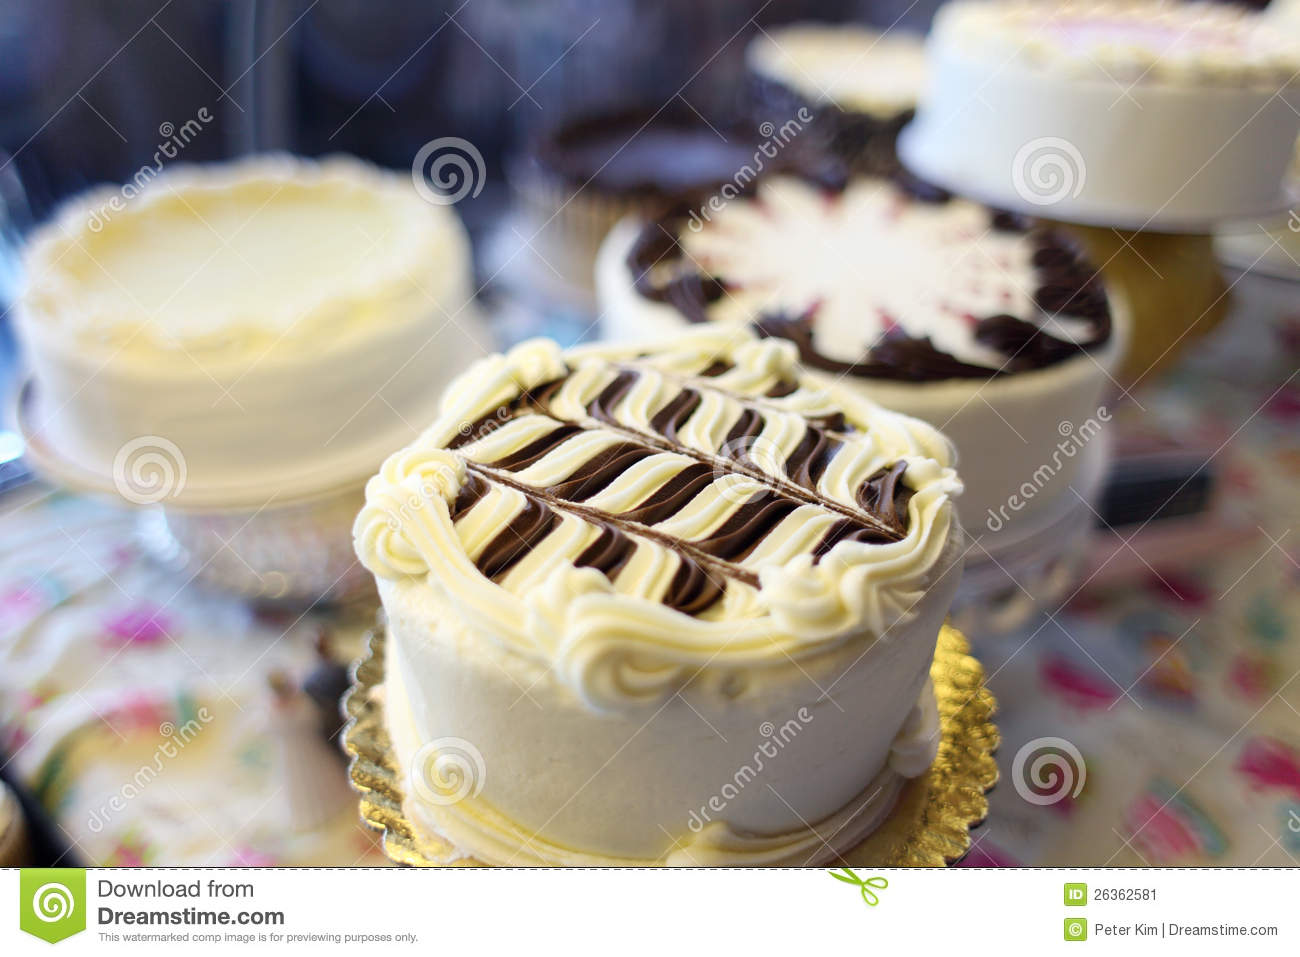 Fine Assorted Cakes Stock Image Image Of Vanilla Delicious 26362581 Funny Birthday Cards Online Barepcheapnameinfo